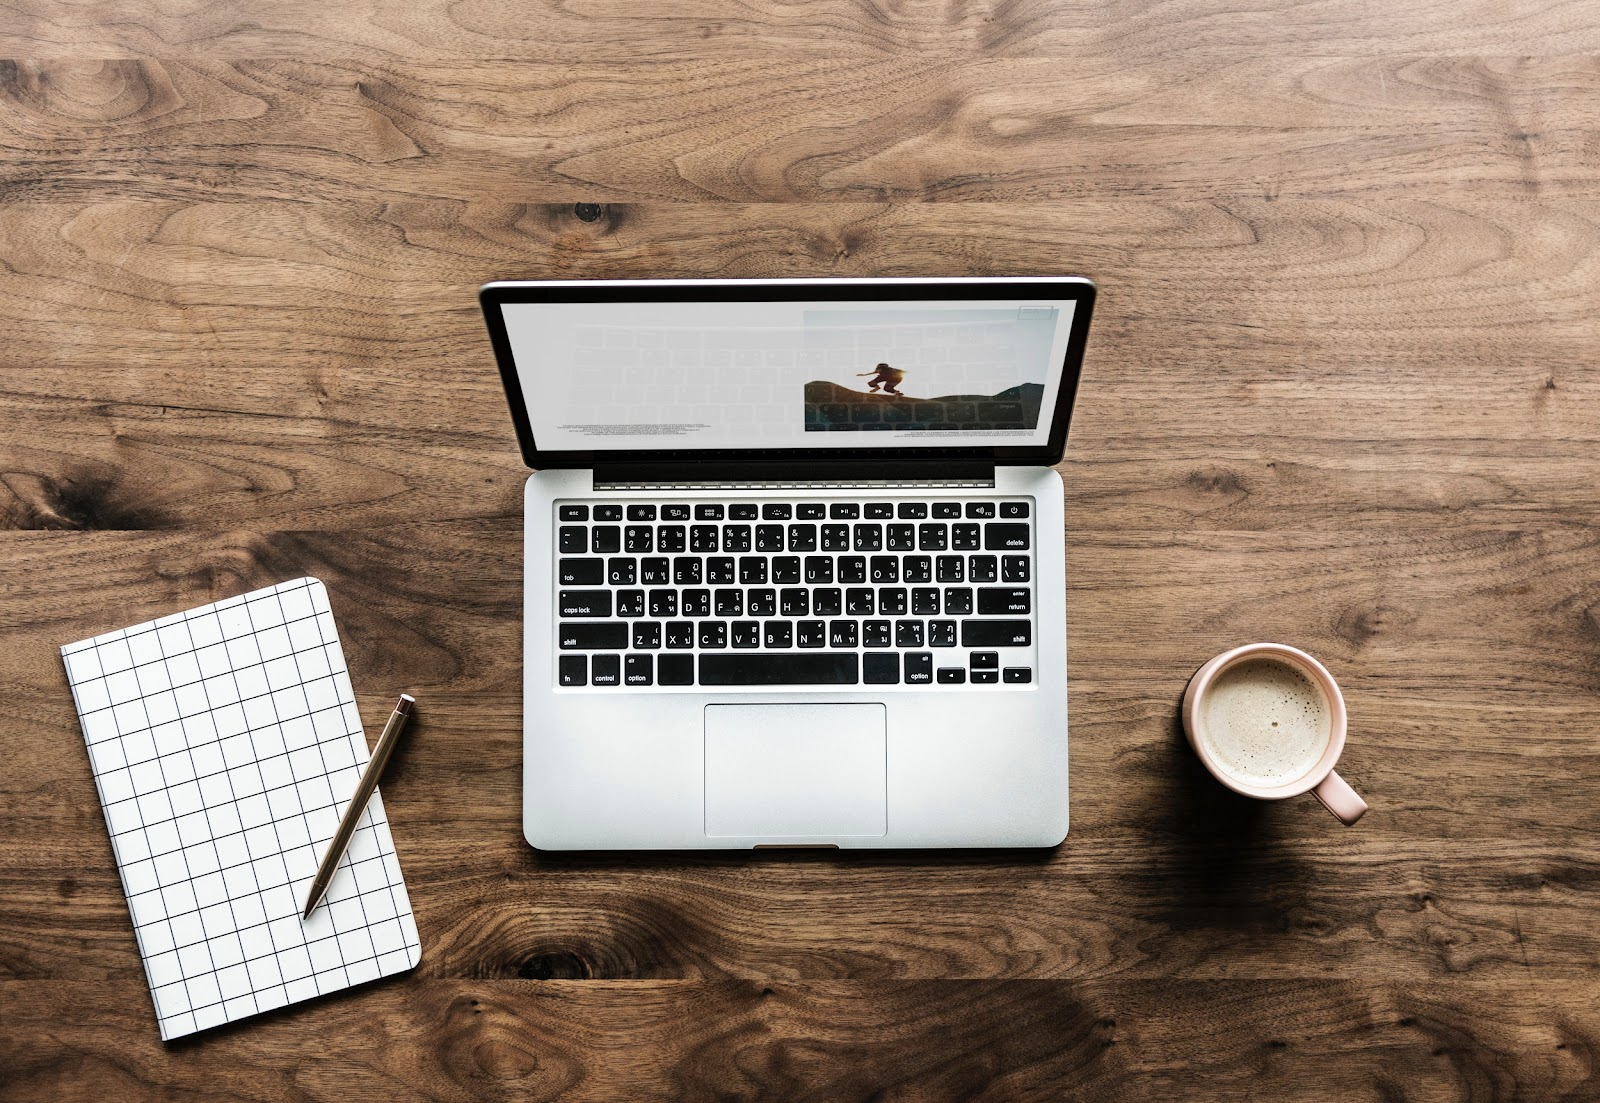 An open laptop on a desk with a notepad and pen next to it on one side and a mug of cocoa on the other.